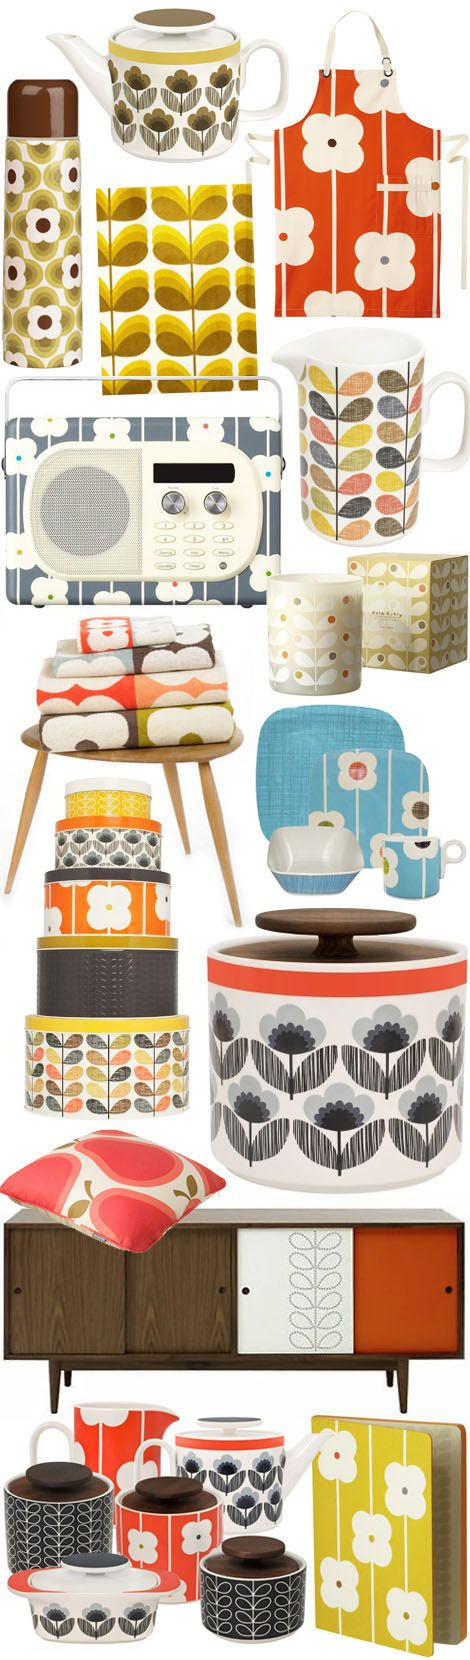 70's retro graphics - orla kiely homeware